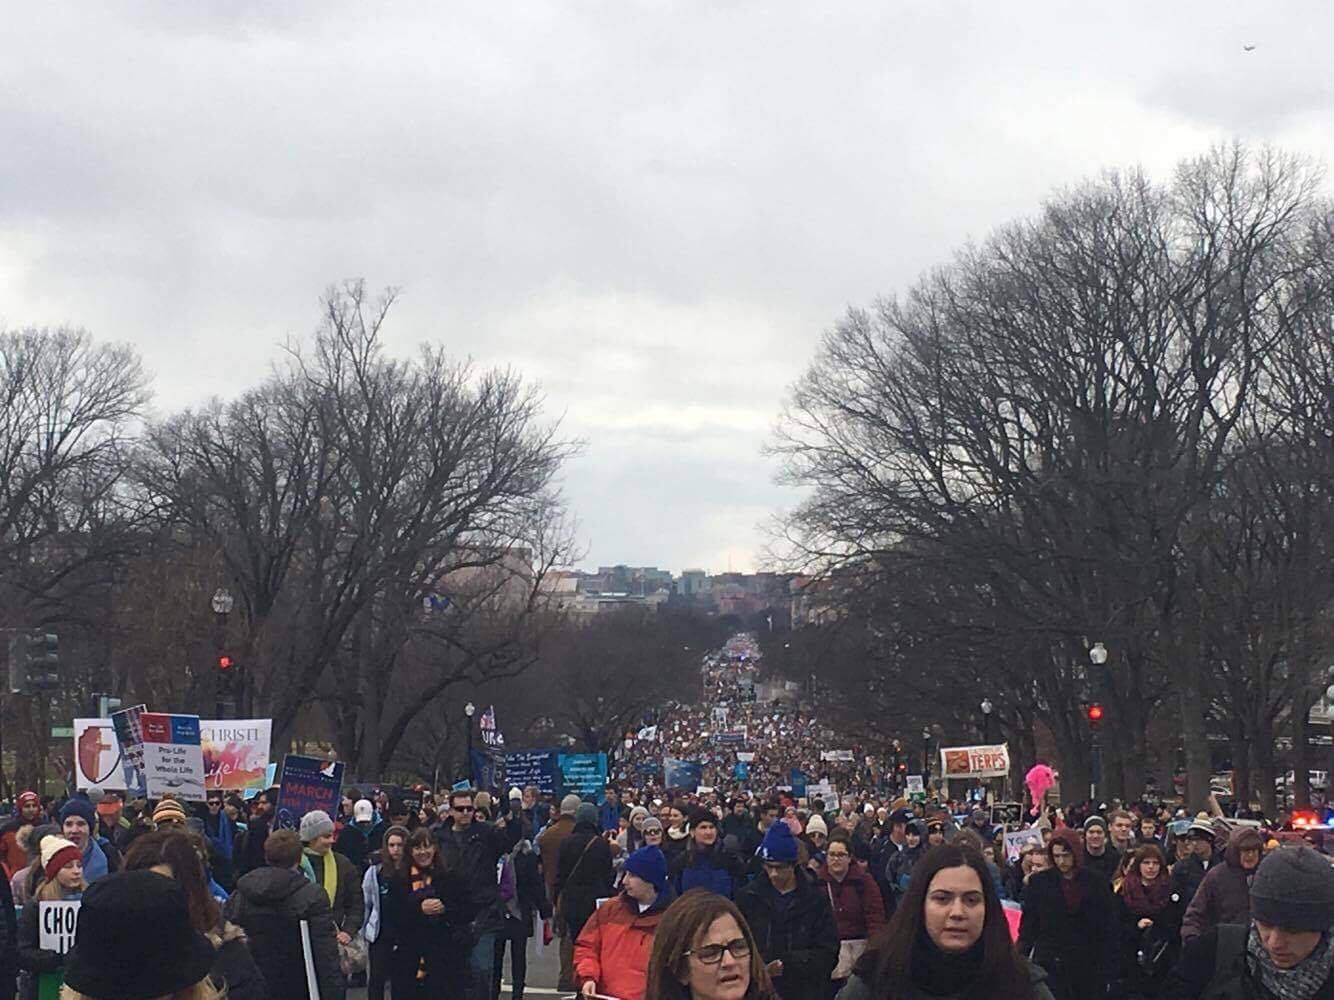 news_March4Life2